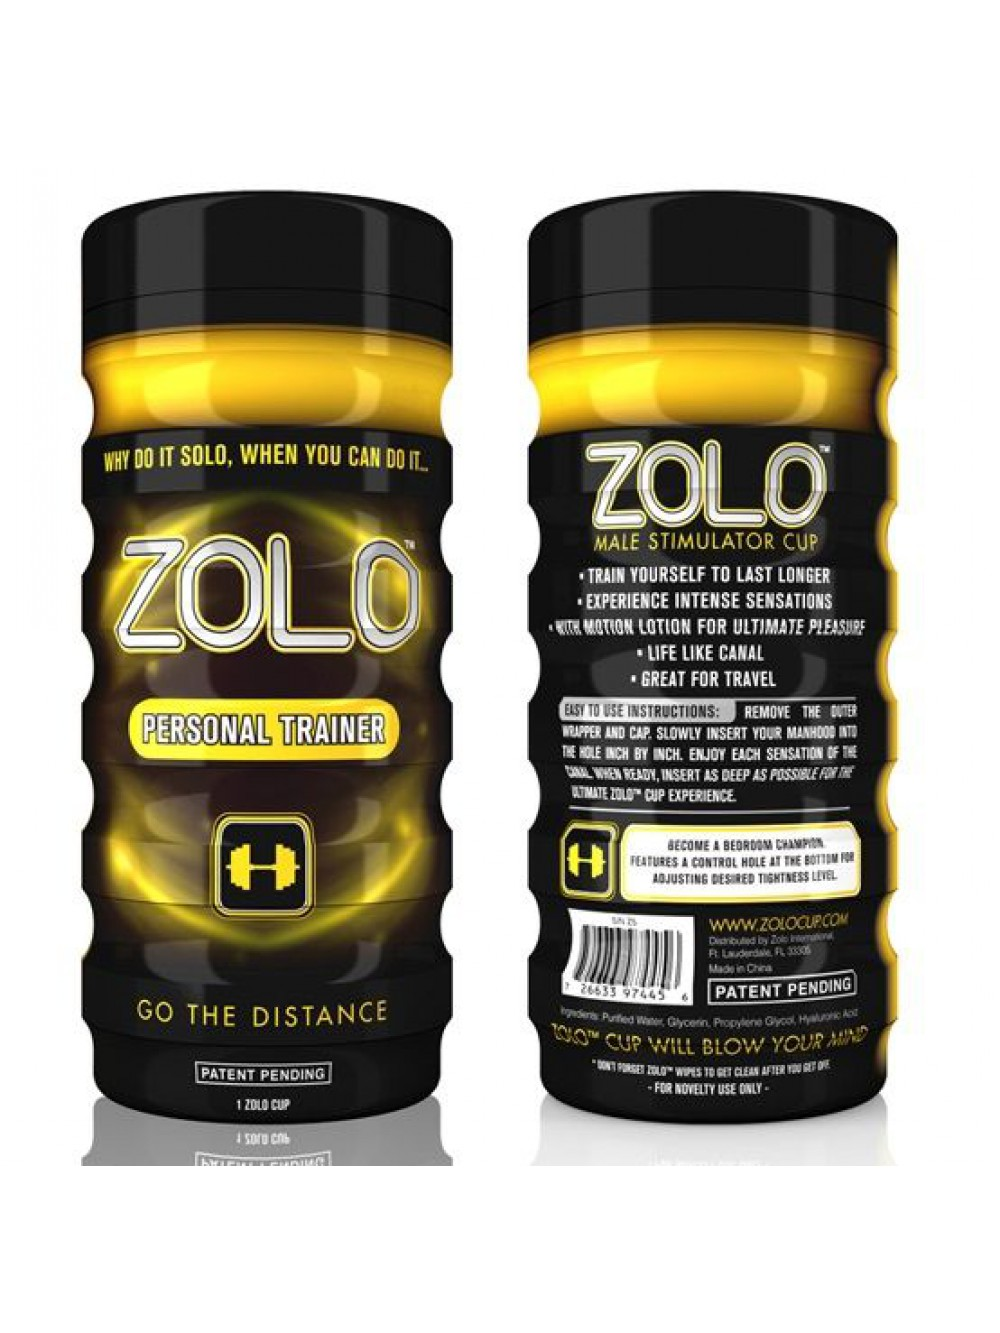 Personal Trainer Zolo Cup